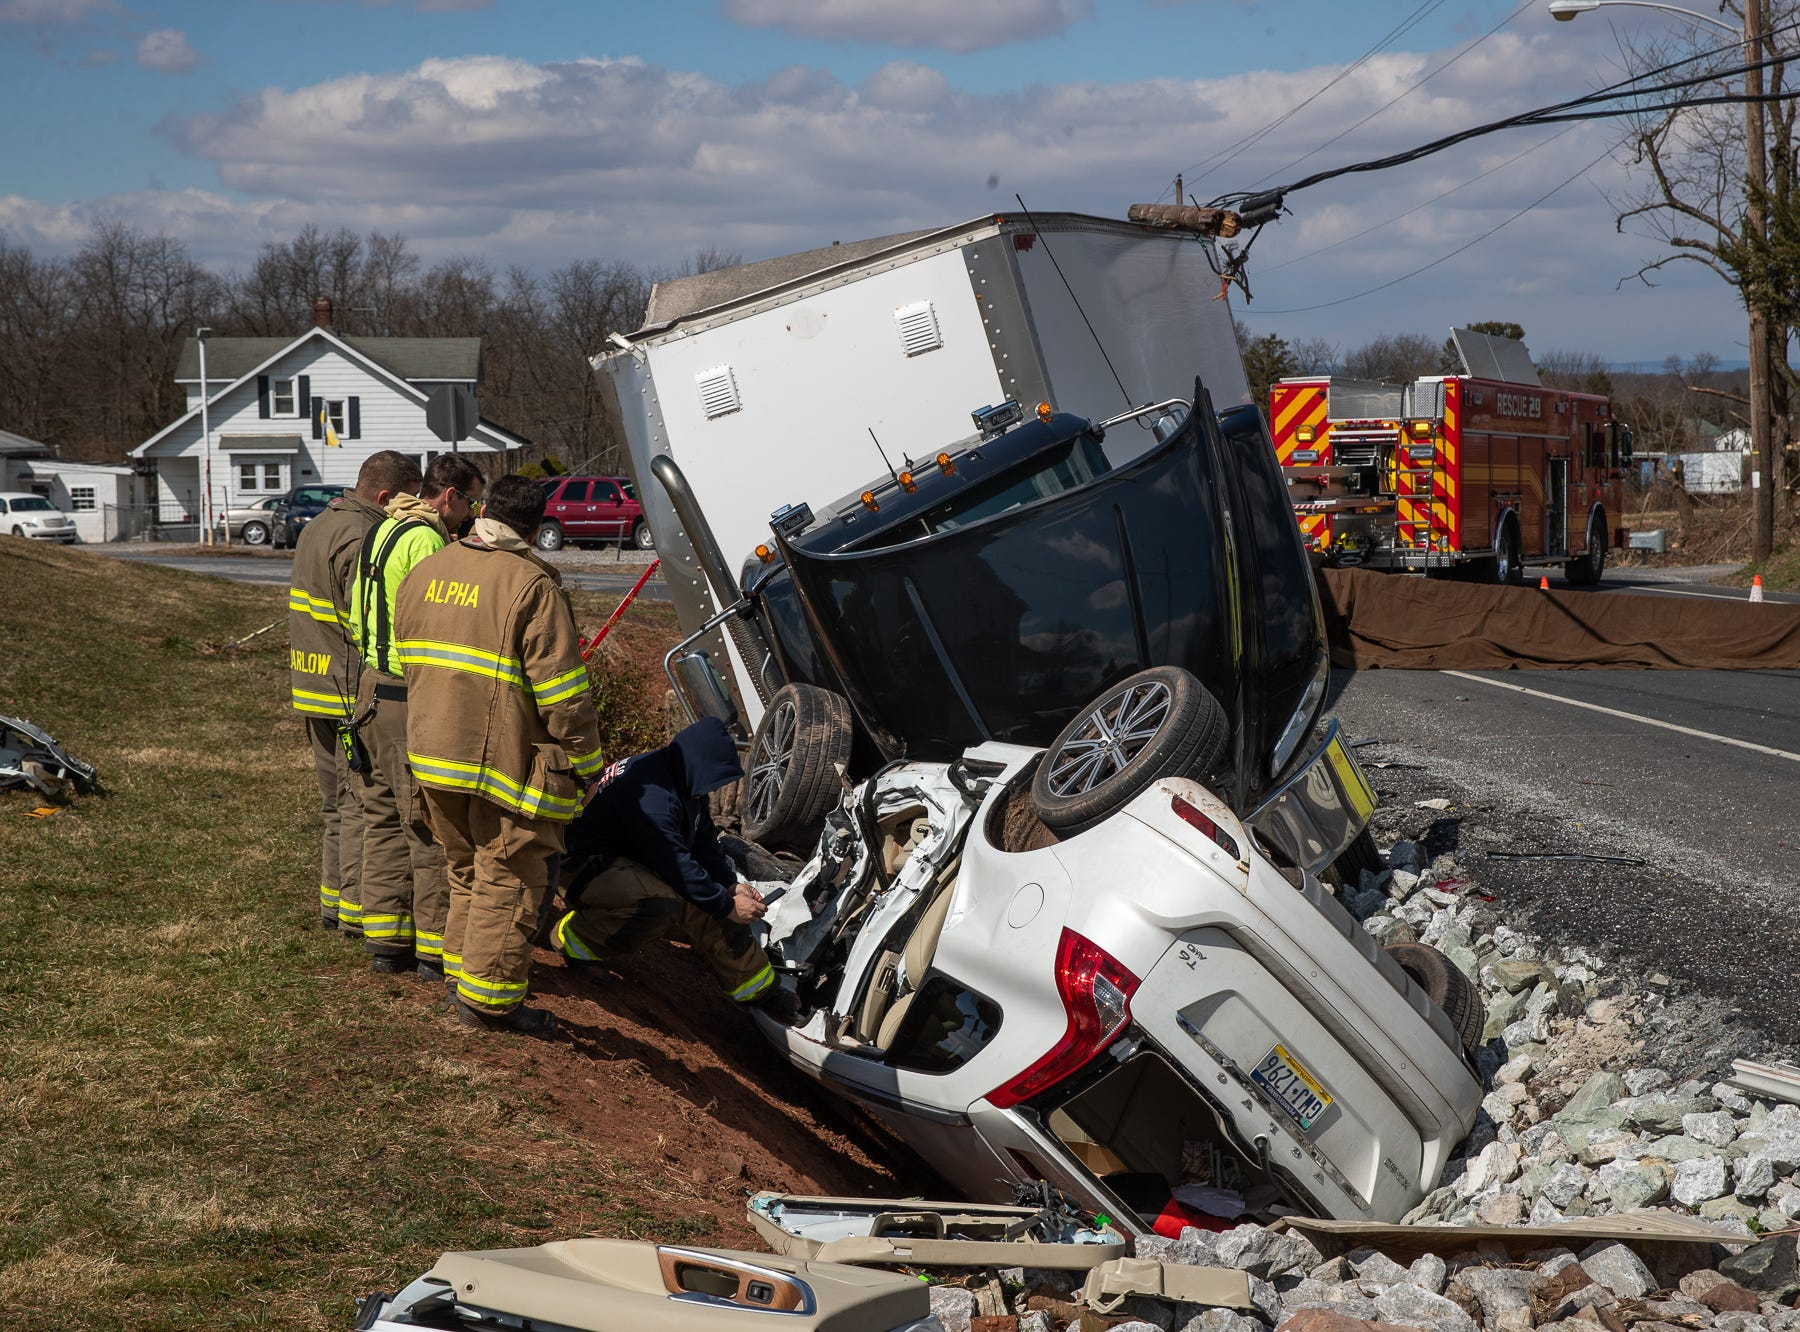 Crews work at the scene of a crash with heavy entrapment involving an overturned SUV and a tractor trailer on the 3600 block of Baltimore Pike, Saturday, March 16, 2019, in Mt. Joy Township. Littlestown Fire Chief Scott Small said one woman, the sole occupant of the SUV, was flown from the scene after a difficult extrication from the car. The driver of the tractor trailer did not suffer any major injuries, he said, and was able to crawl right out of the cab.